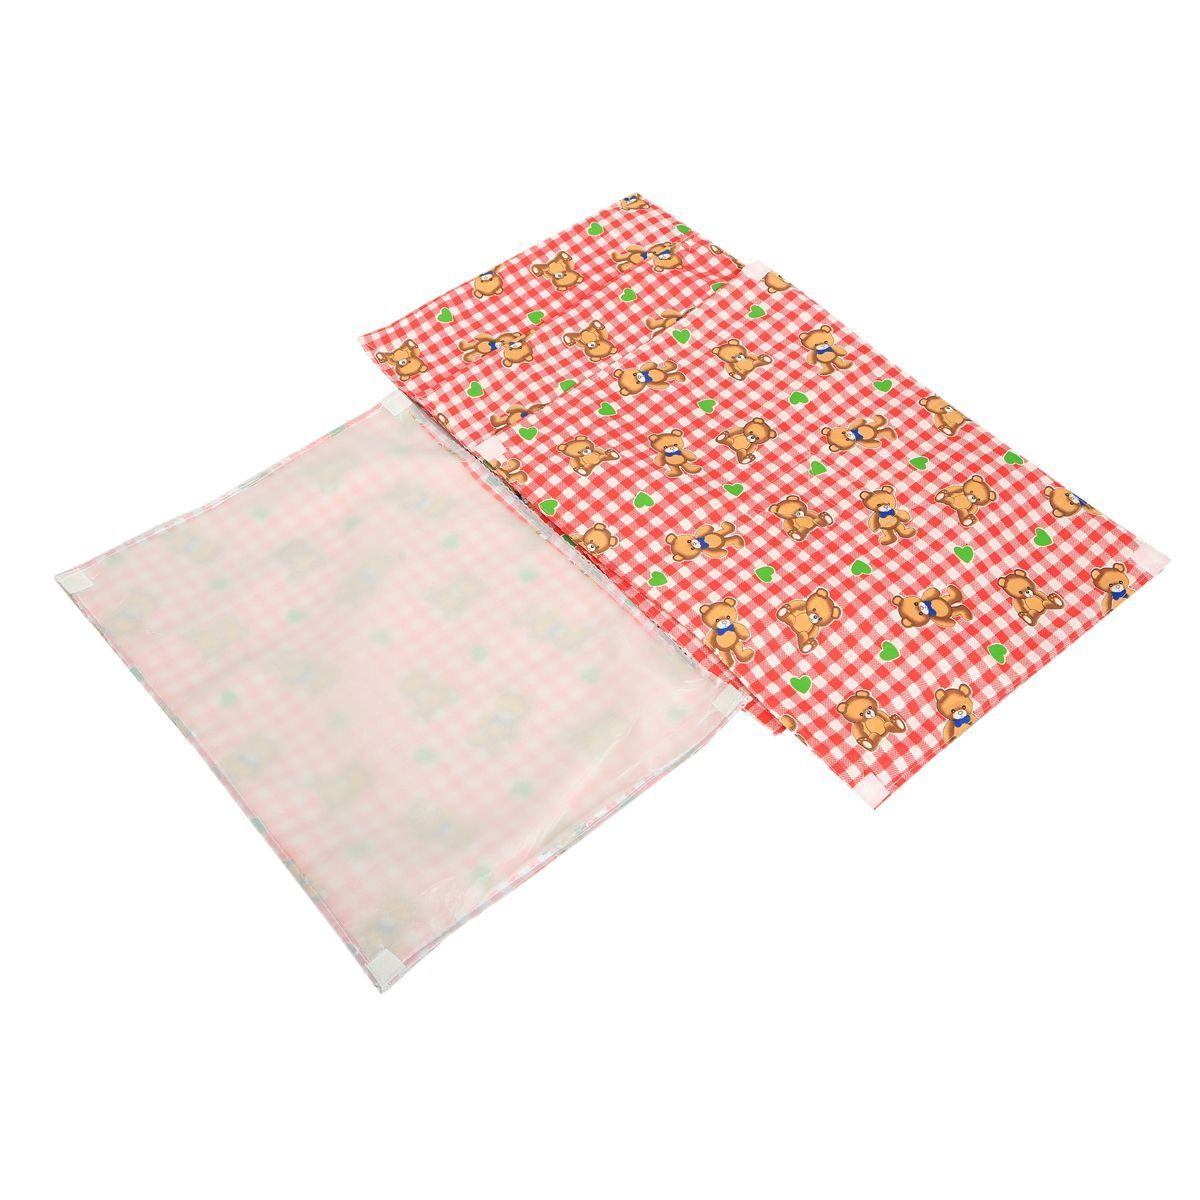 Kuber Industries™ Baby Waterproof Sheets,Baby Changer Sheet Plastic & Cotton Foam Cushioned Sleeping Mat & Changing Mat (1+3) (Printed) - KUB416